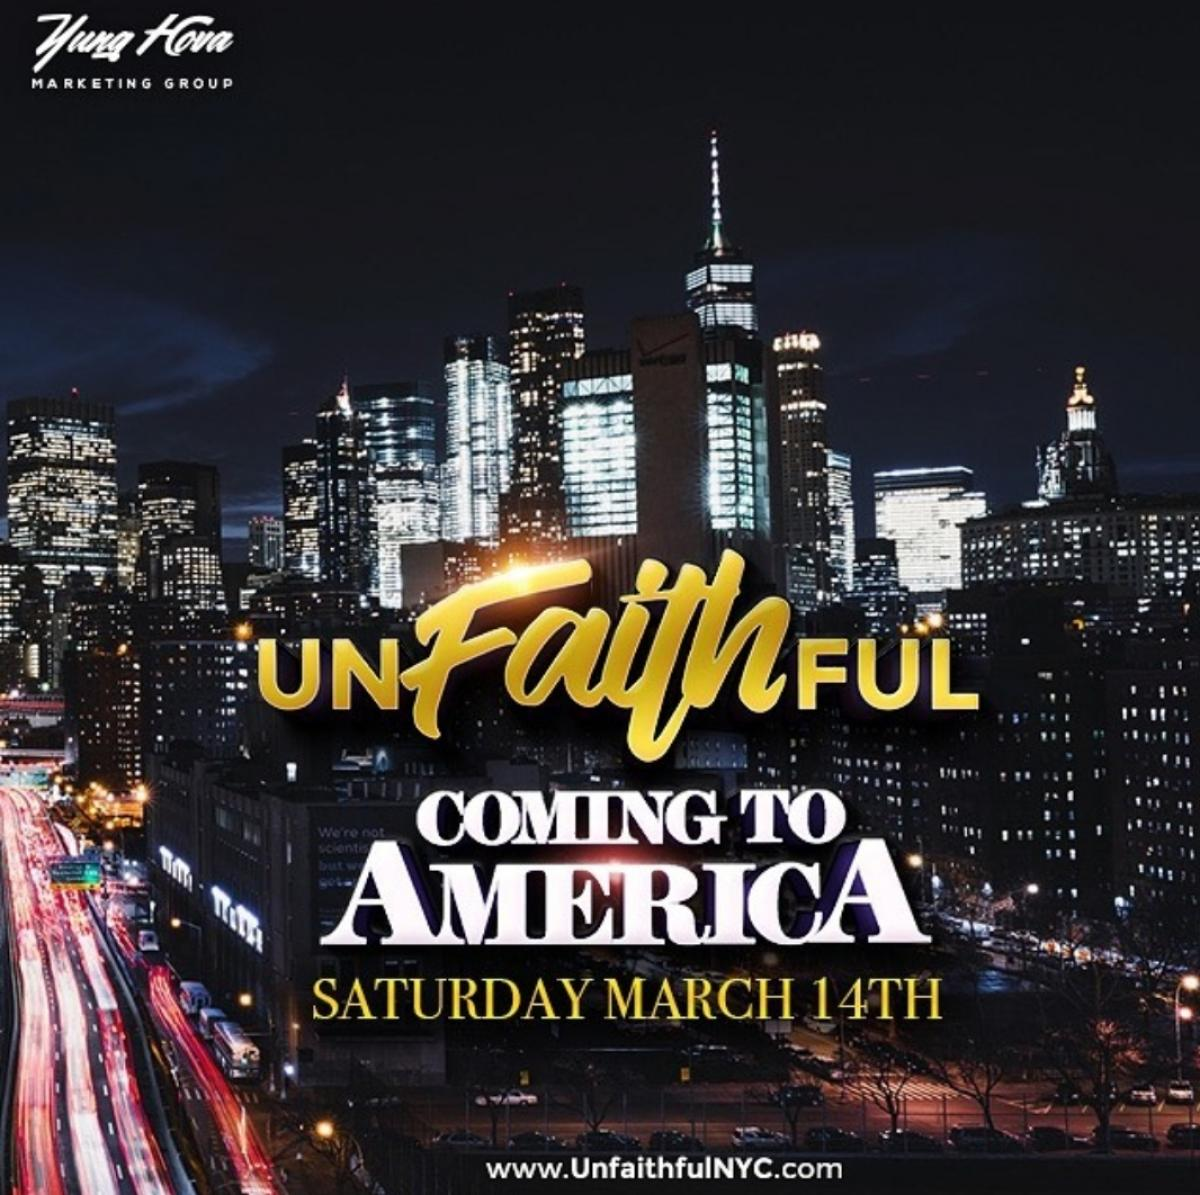 Unfaithful 2020 flyer or graphic.